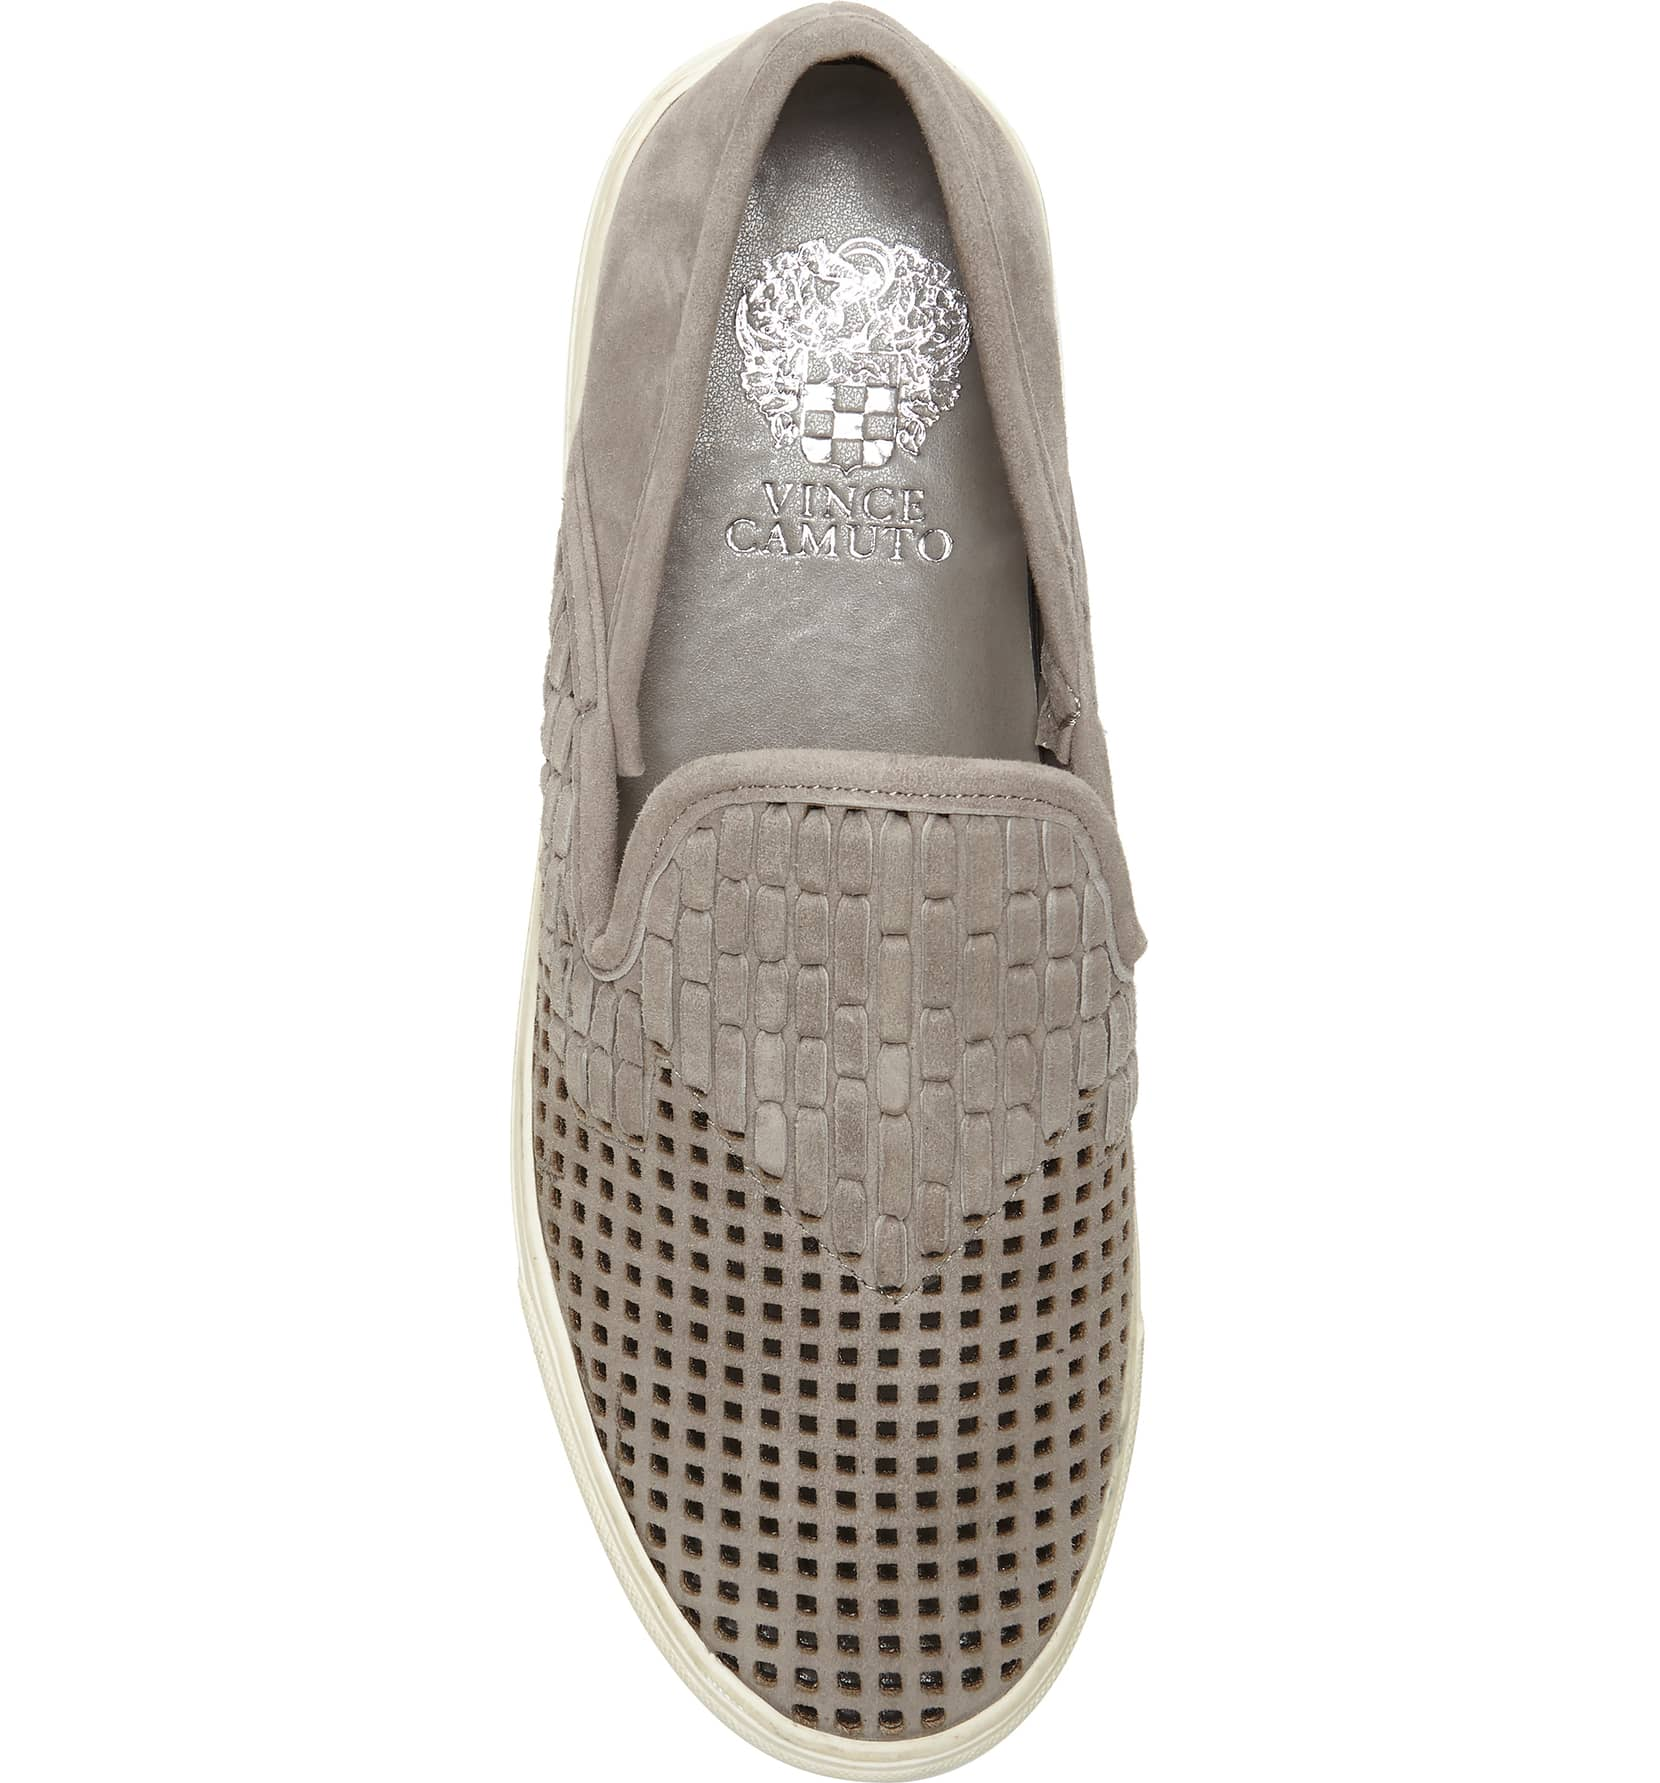 Vince-Camuto-Bristie-Storm-Grey-Leather-Woven-White-Sole-Slip-On-Sneakers thumbnail 15